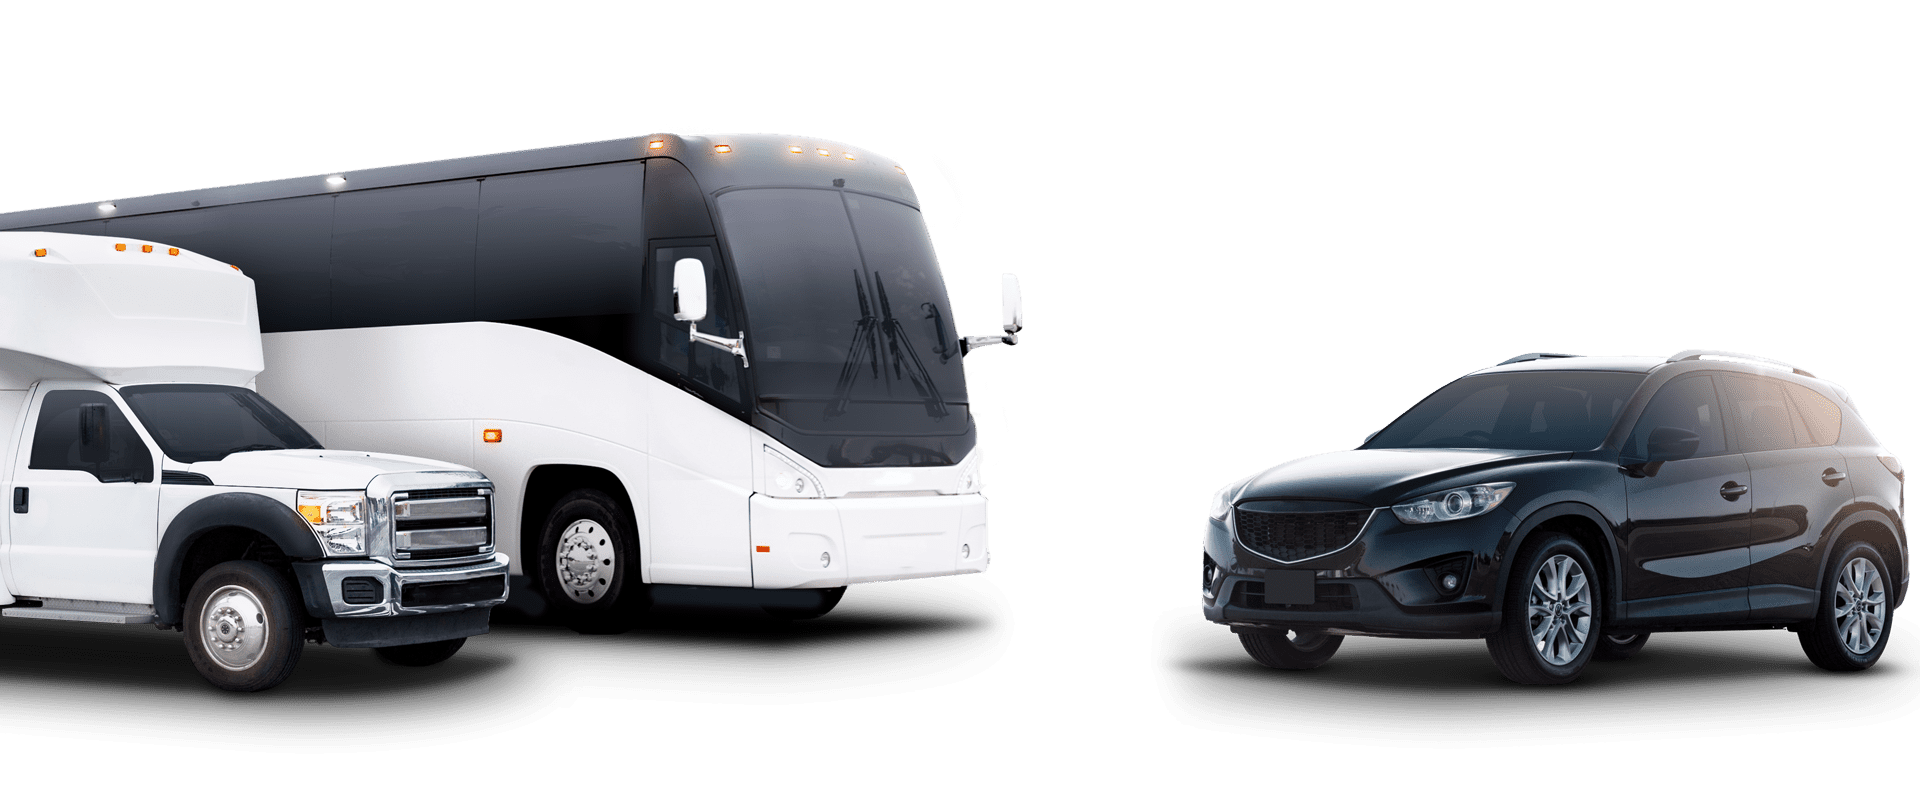 Mini Buses & Coaches Transfers Services